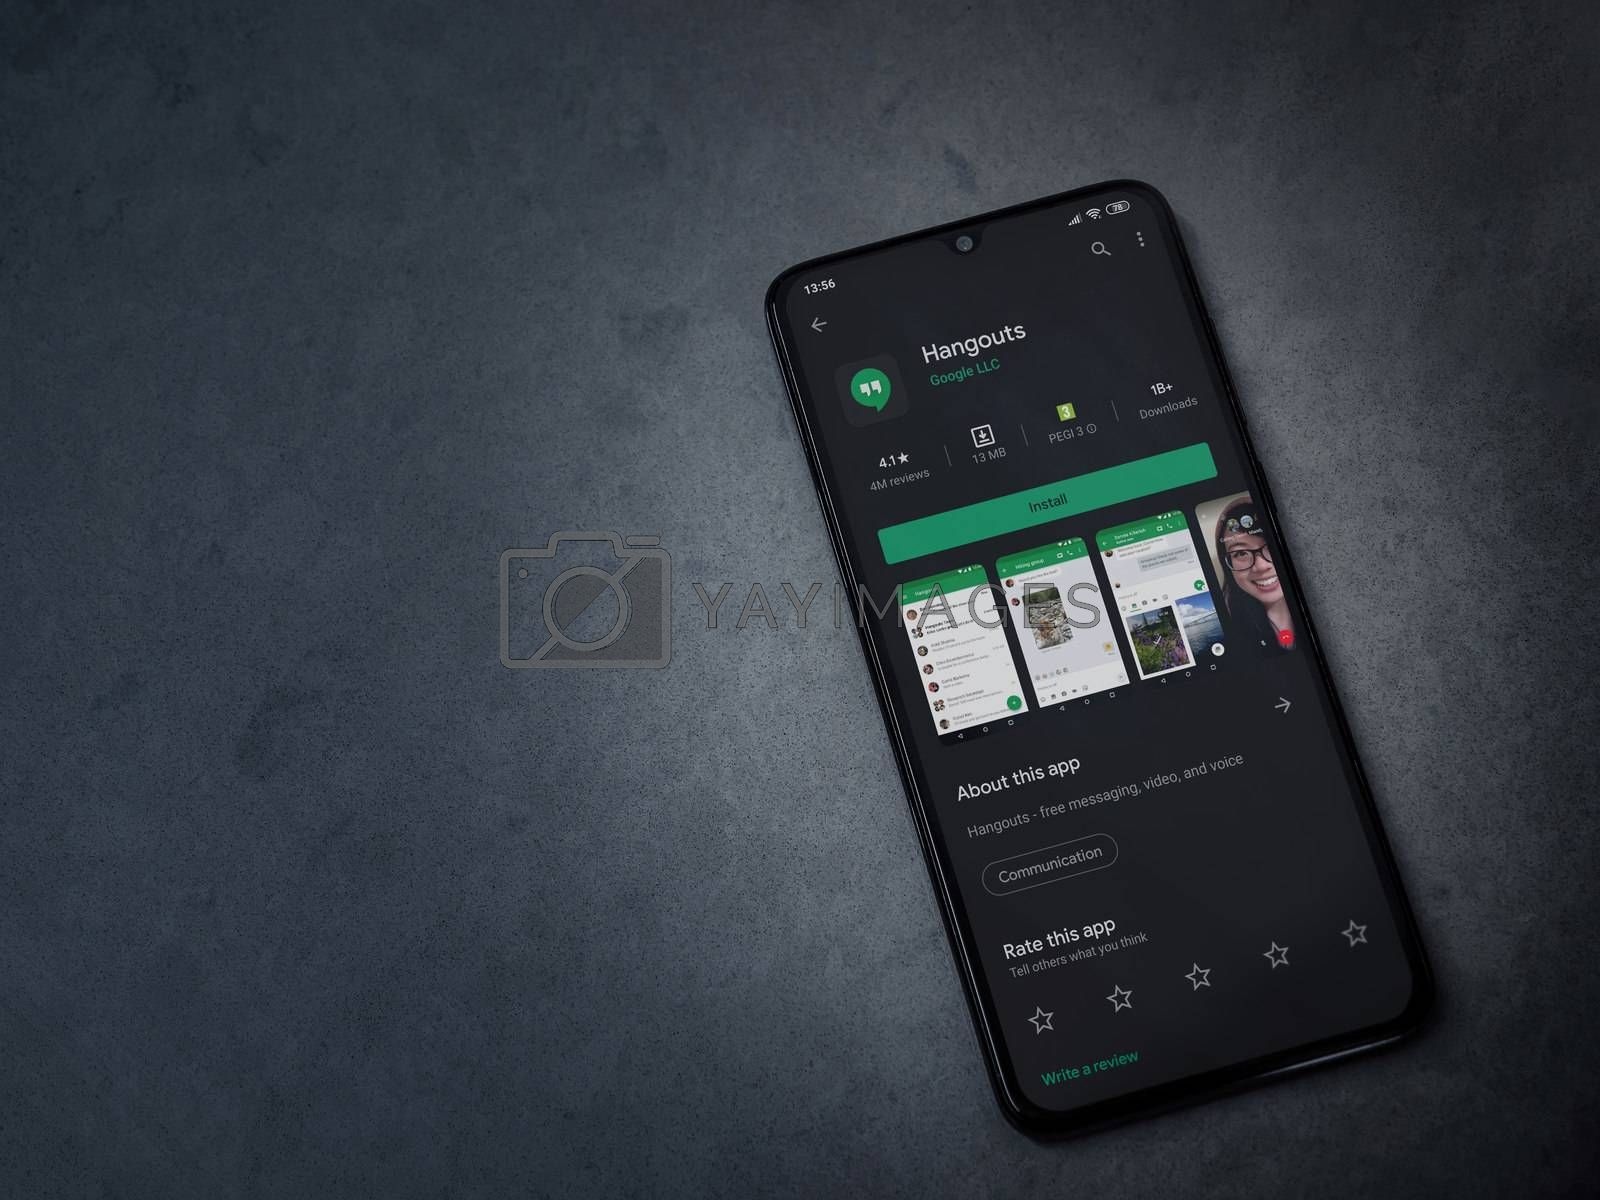 Lod, Israel - July 8, 2020: Hanghouts app play store page on the display of a black mobile smartphone on dark marble stone background. Top view flat lay with copy space.